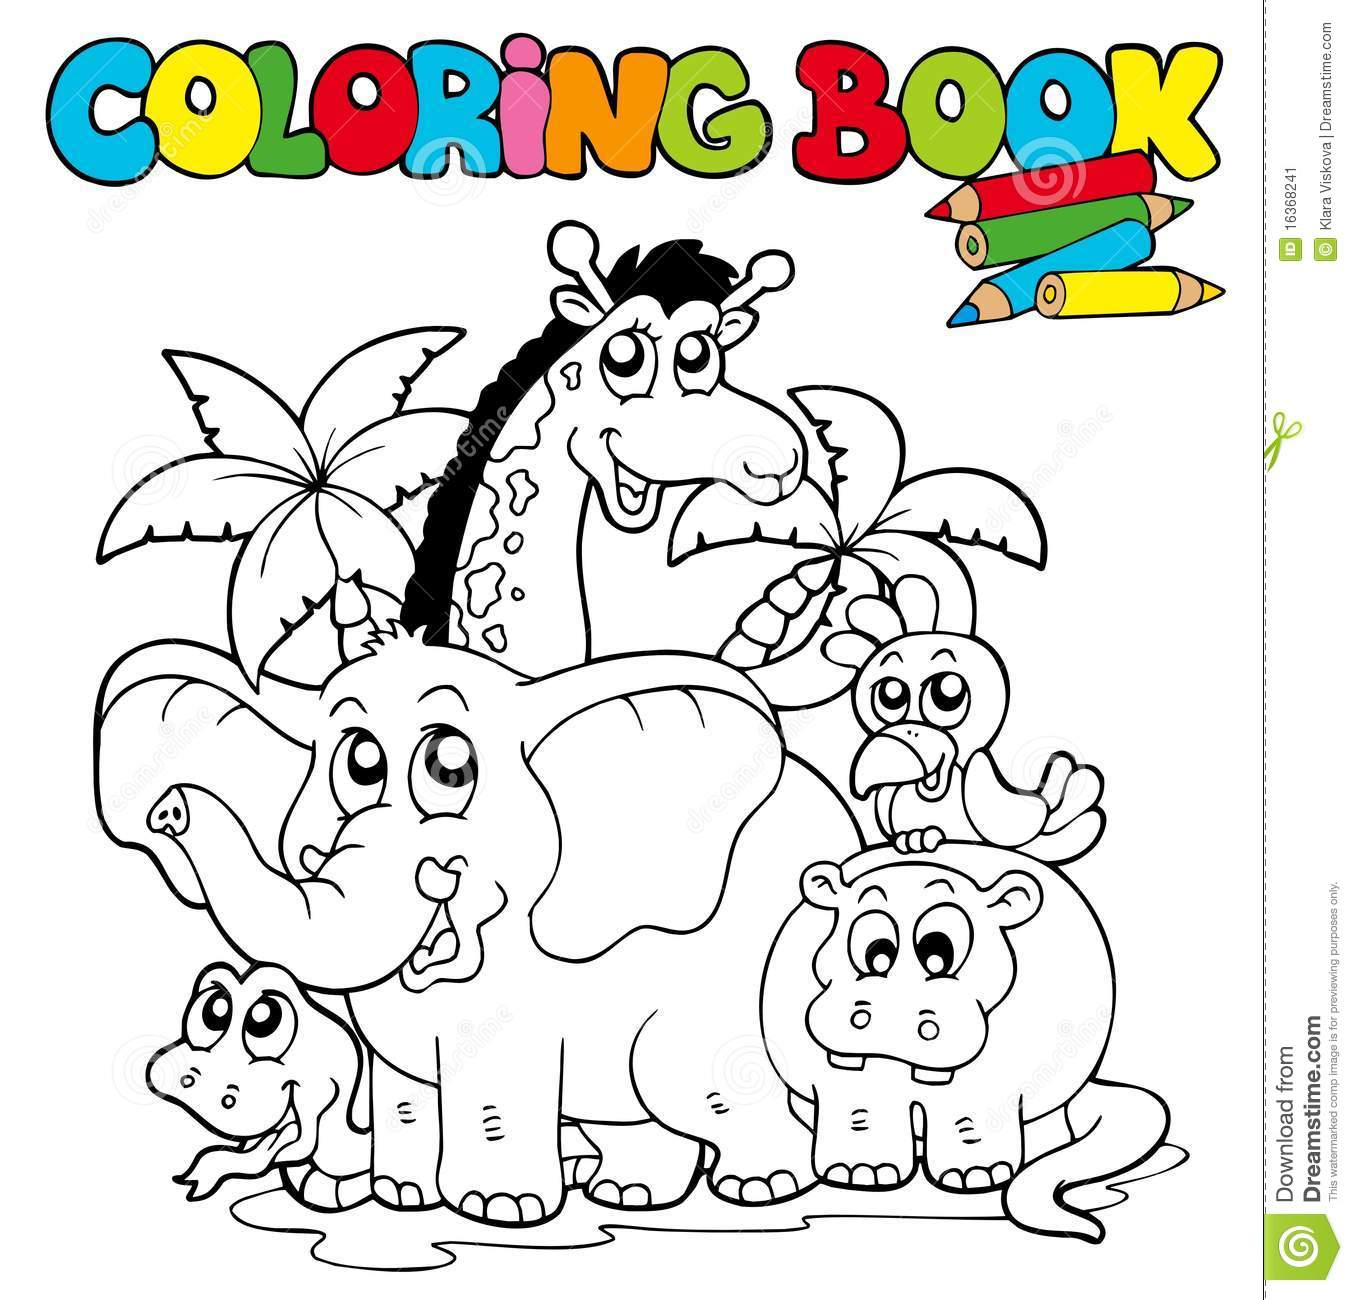 Lovely Tattoo Coloring Book Thin Michaels Coloring Books Round Mystical Mandala Coloring Book Mickey Mouse Coloring Book Old Fairy Coloring Book RedBlack Panther Coloring Book Sea Animal Coloring Pages,free Printable Kids Ocean Animals ..